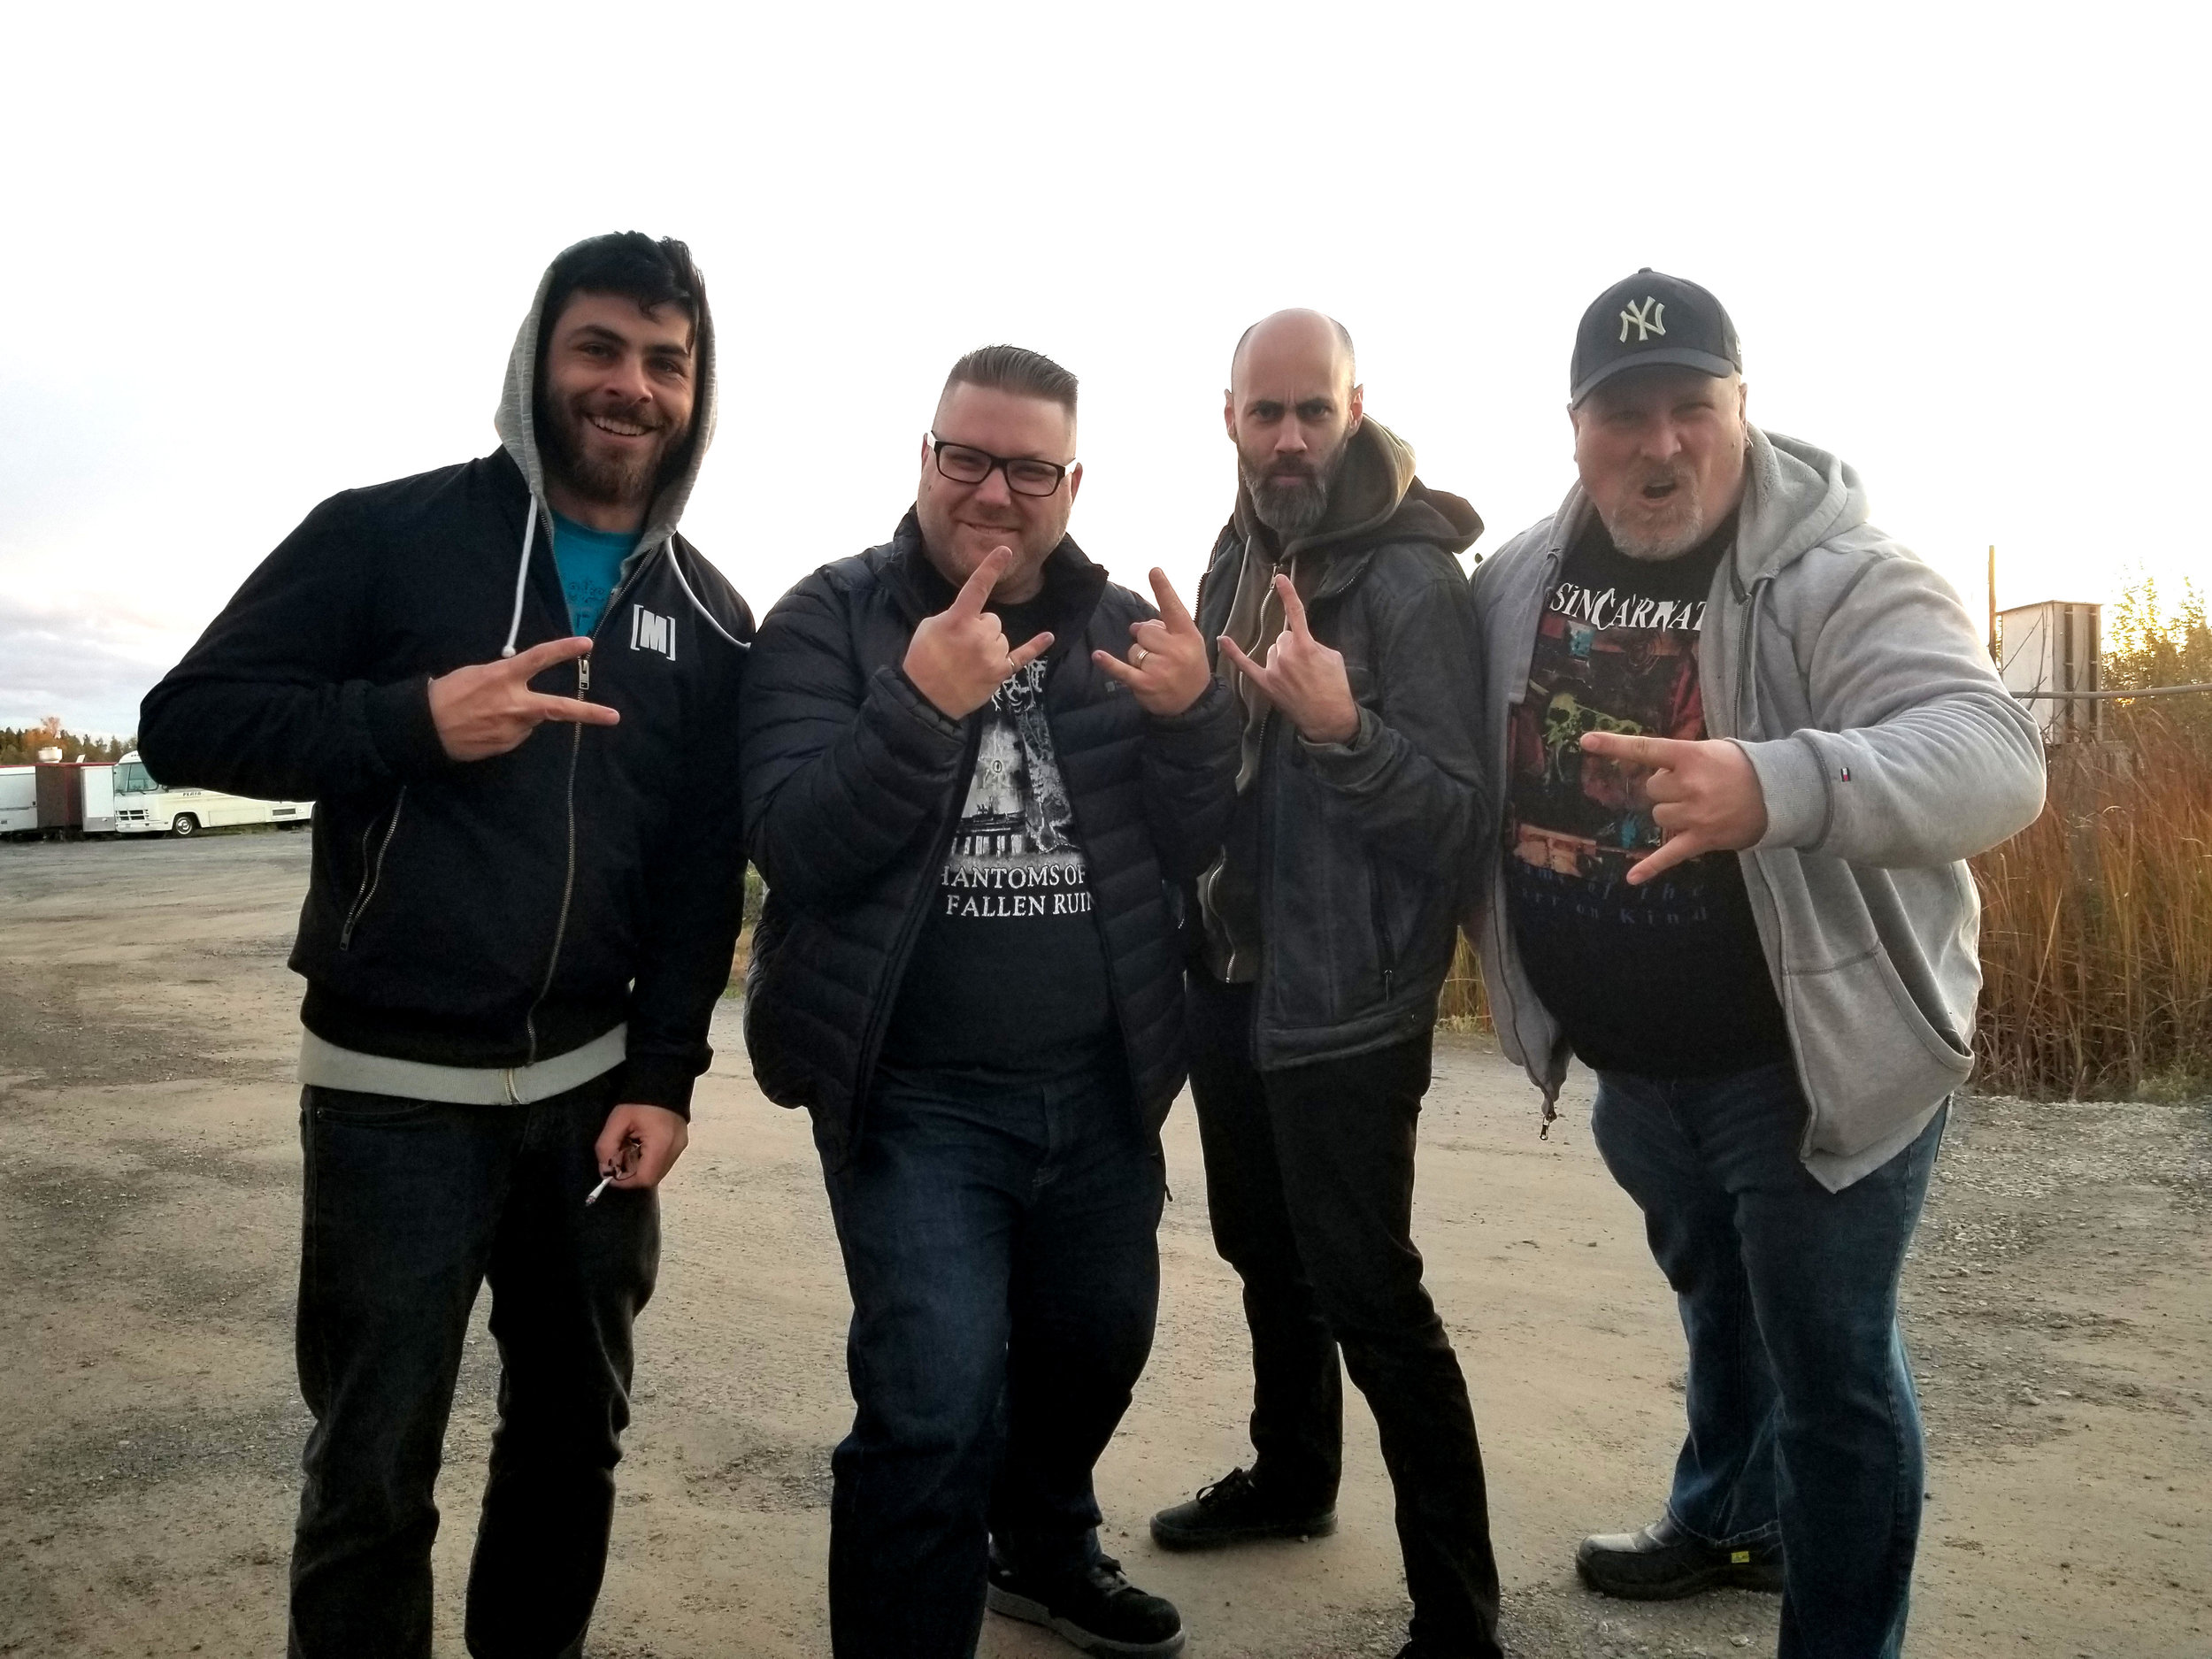 Left to right: Jeff Mahfoud, Neil Grandy (former drummer, Dichotic), Billy Stever, Jeff Caulder (former guitarist, Dichotic)